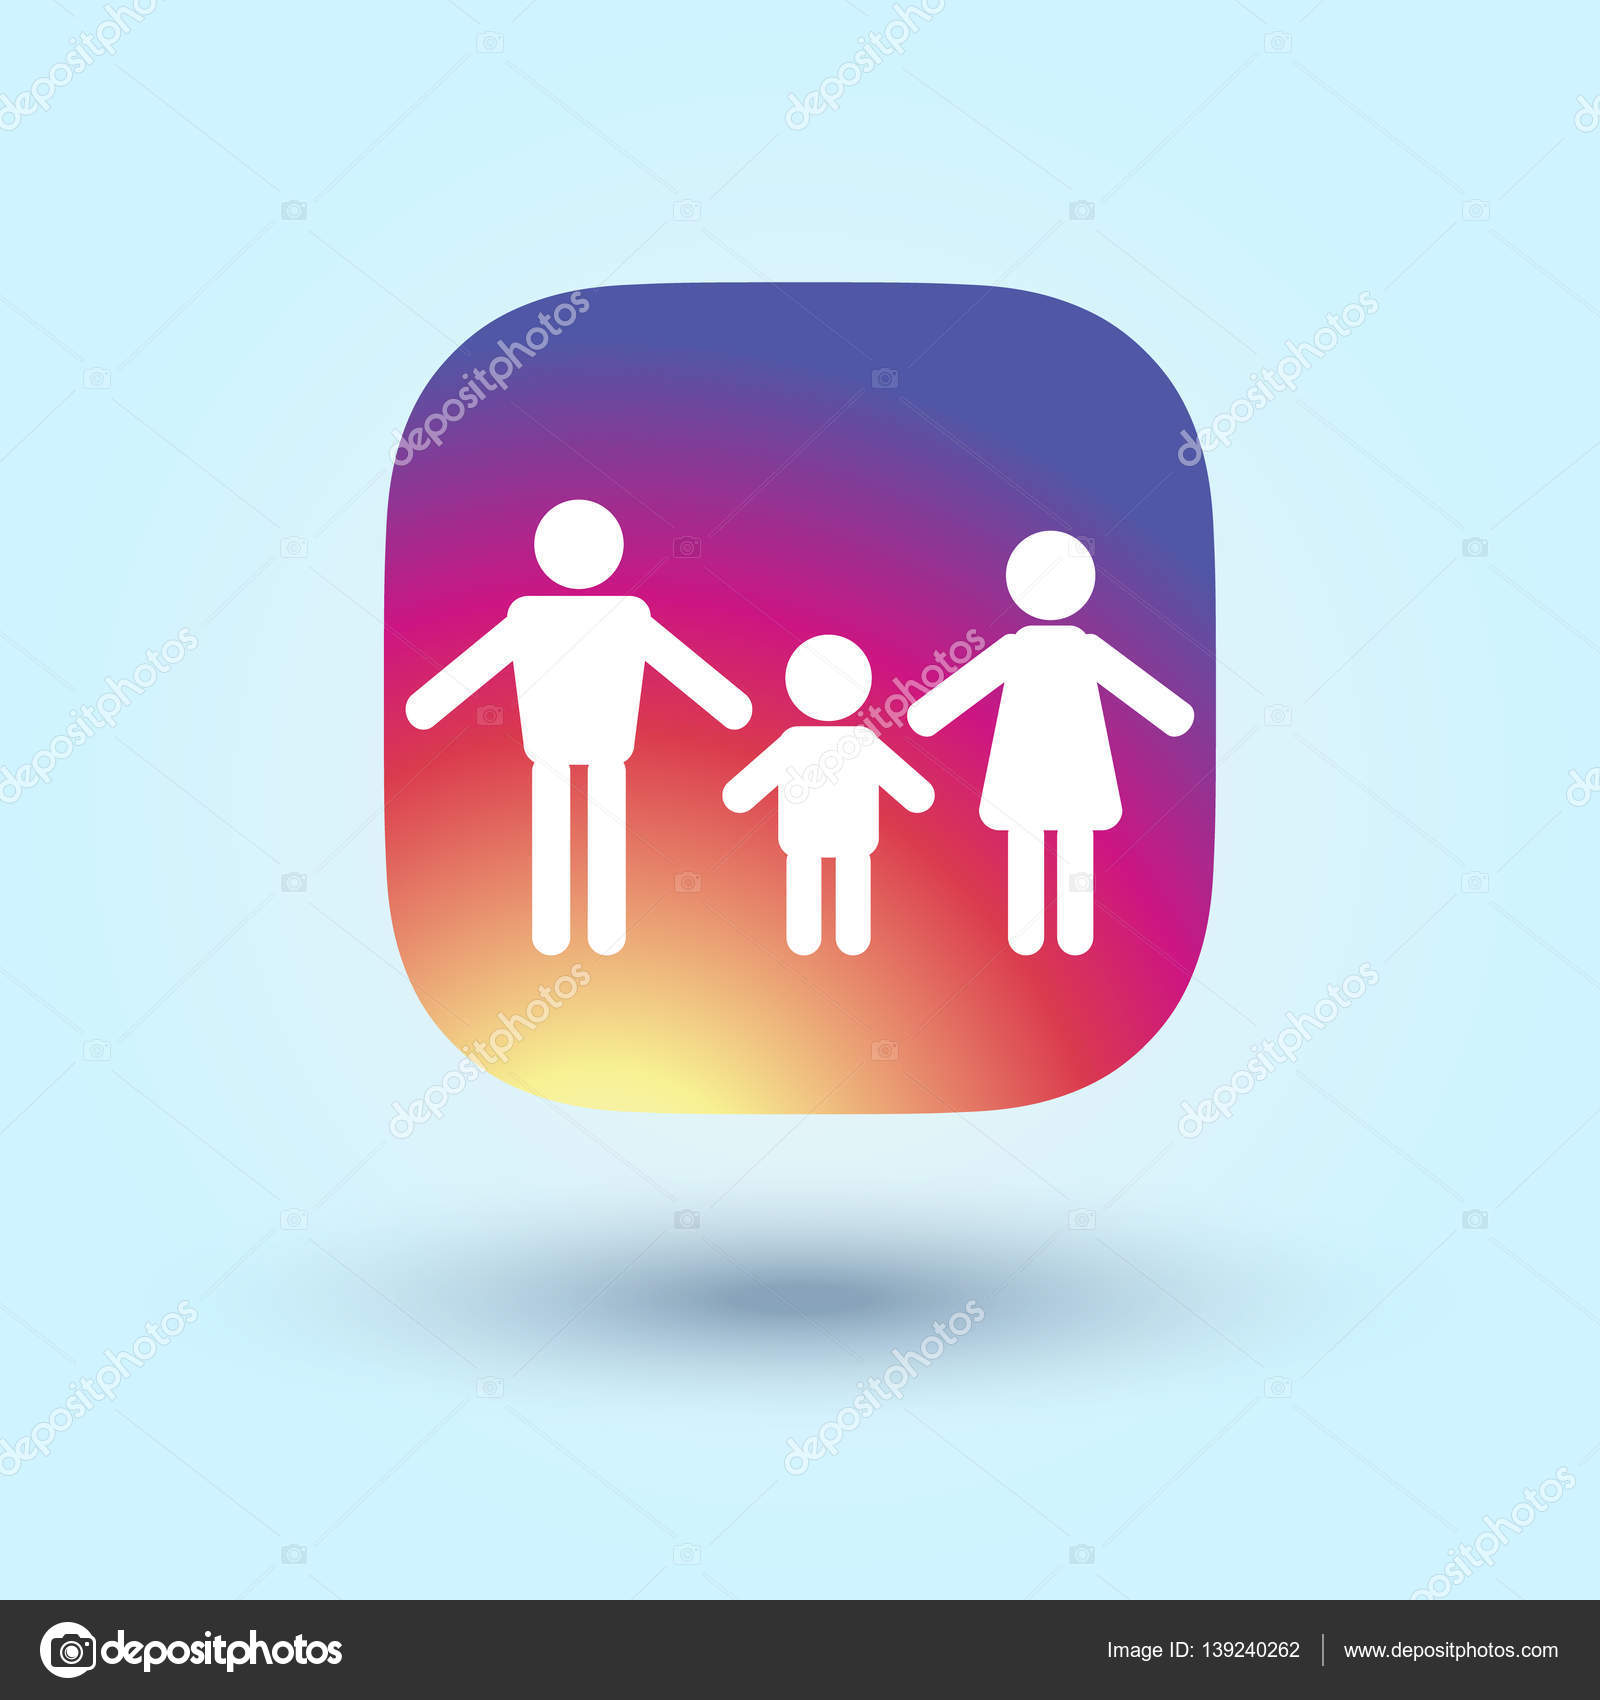 Family Icon In Trendy Flat Style Isolated On Colorful Background